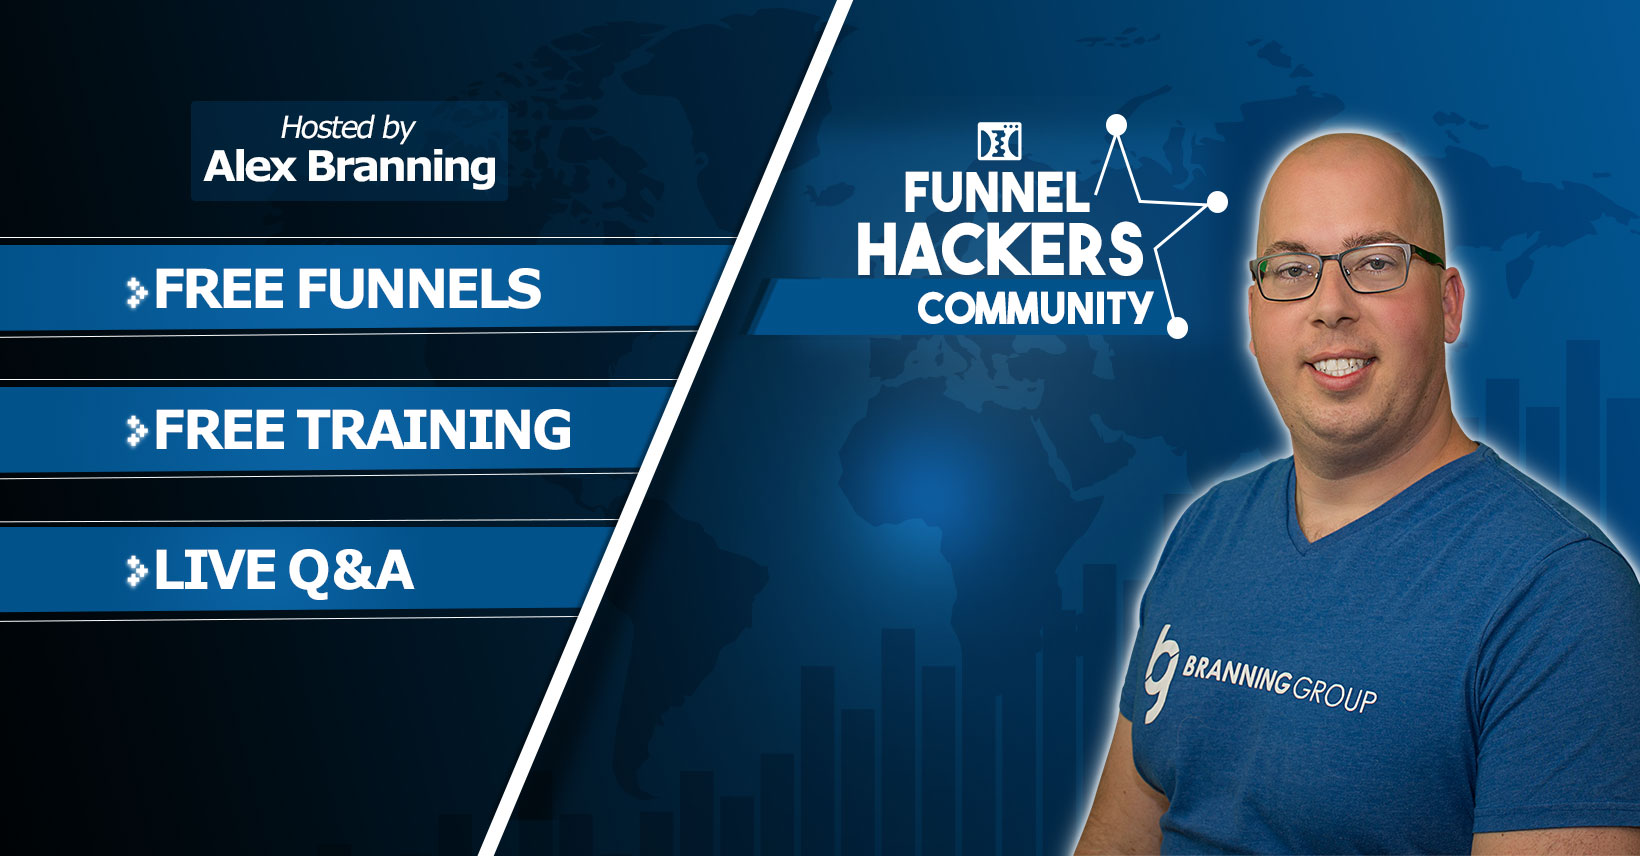 Funnel Hackers Community